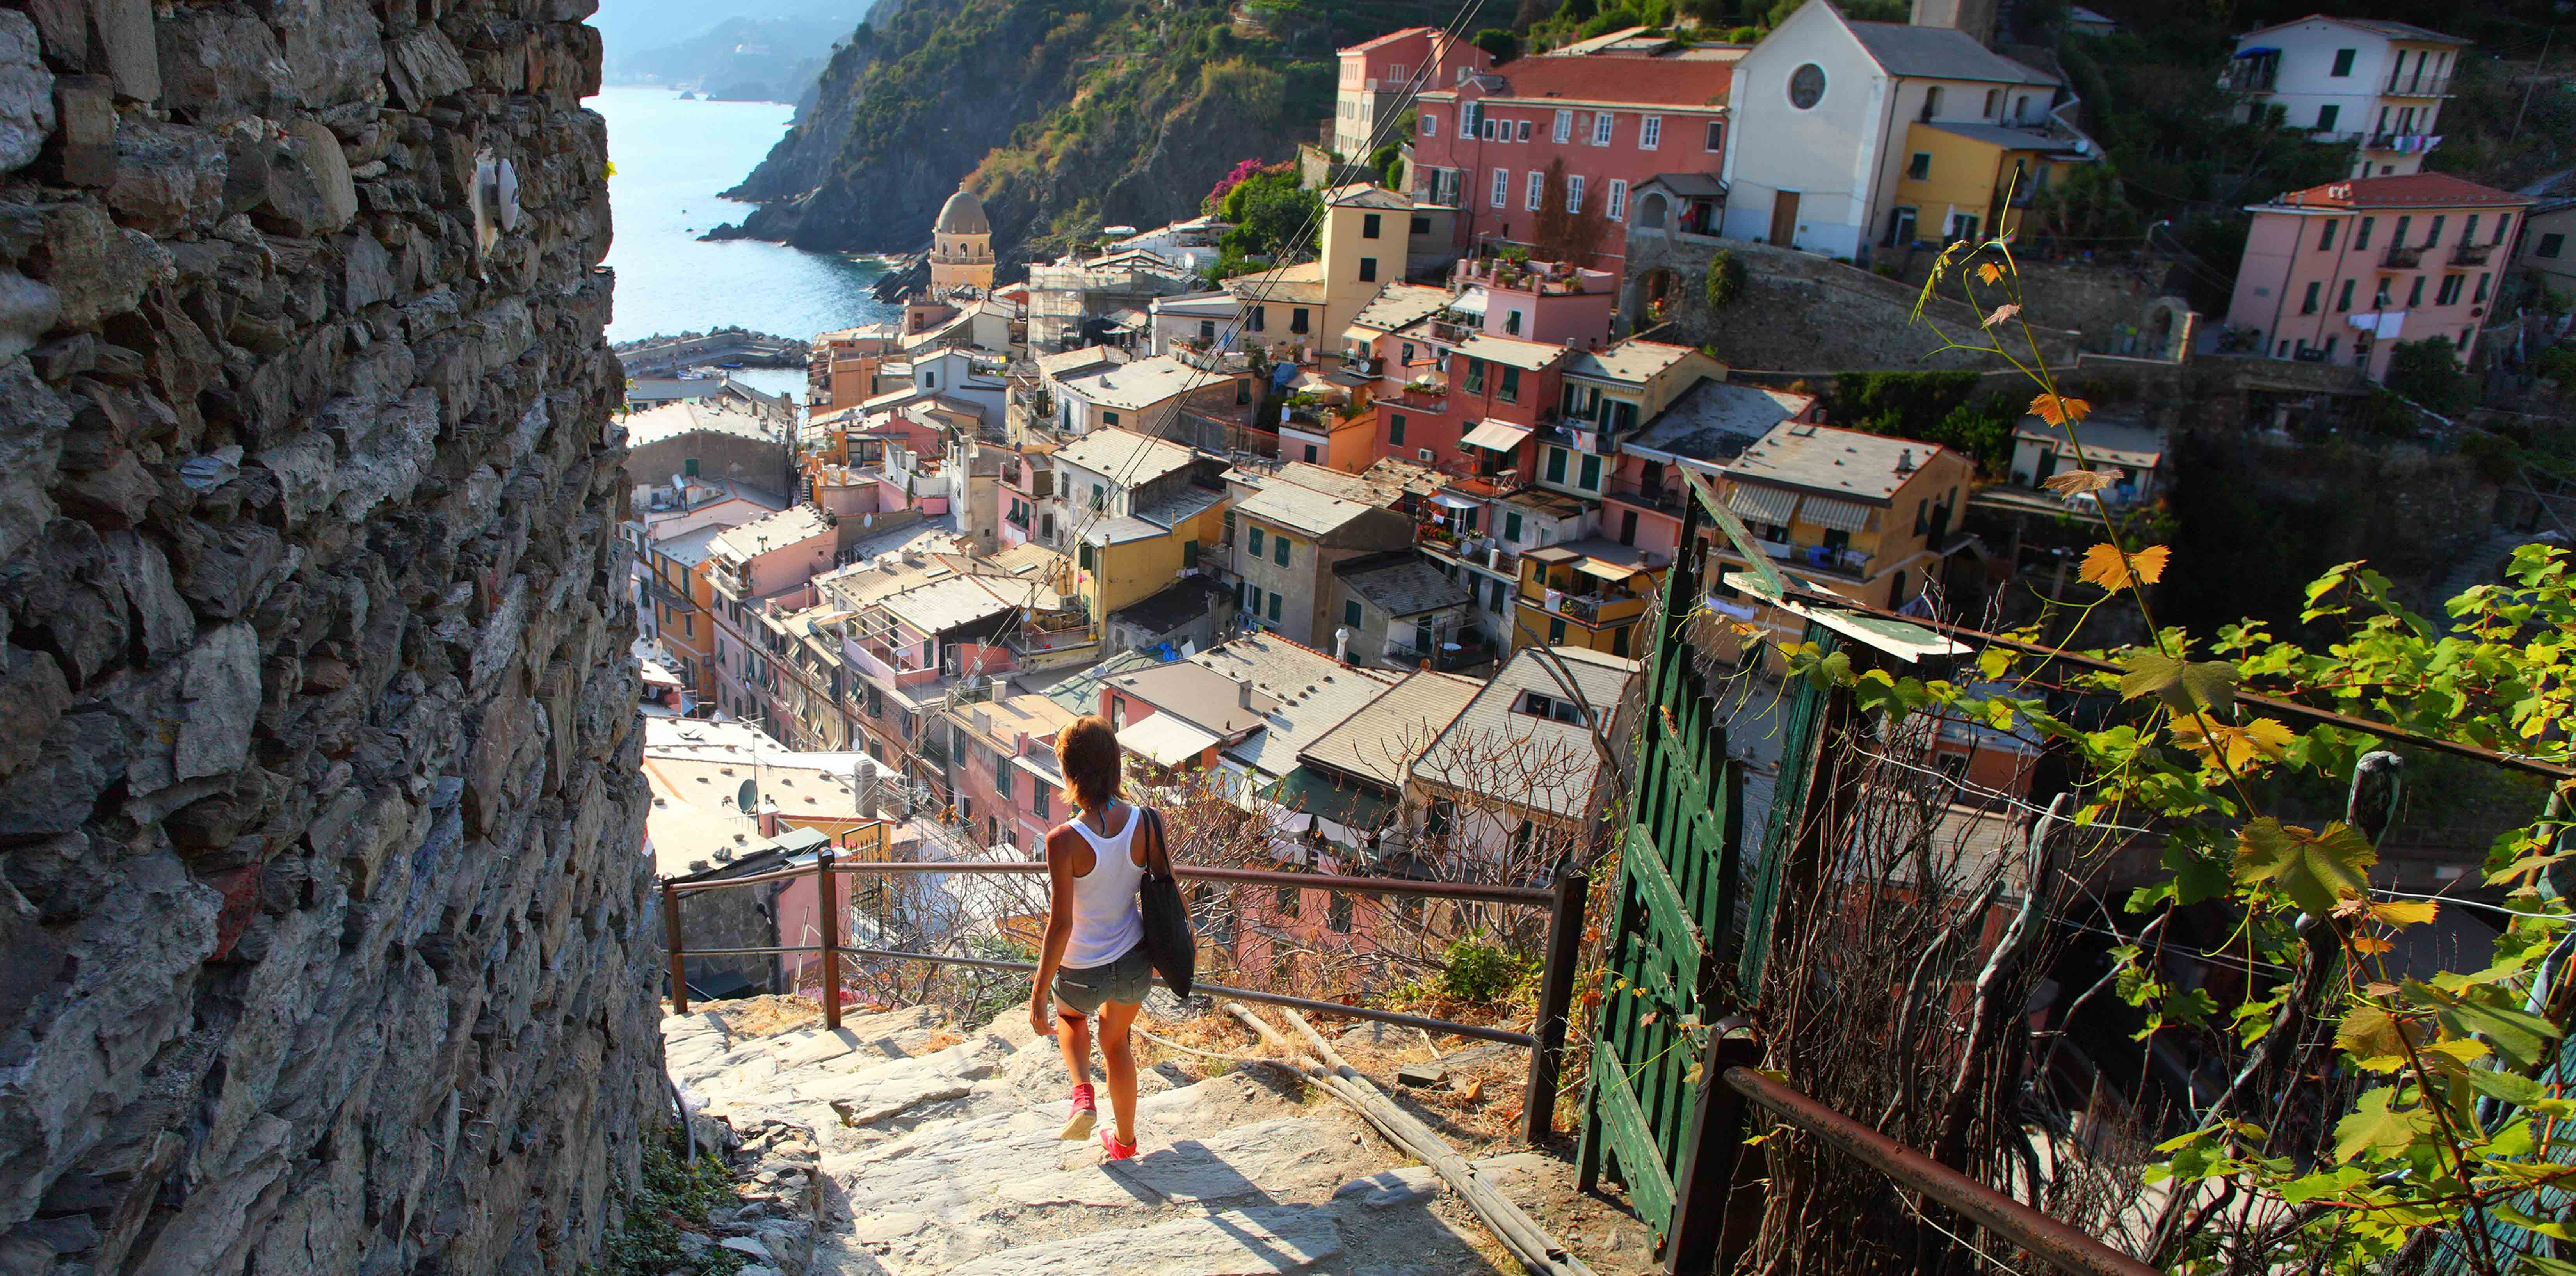 Europe Italy woman exploring colorful homes and beautiful views of the coastline-luxury vacation destinations